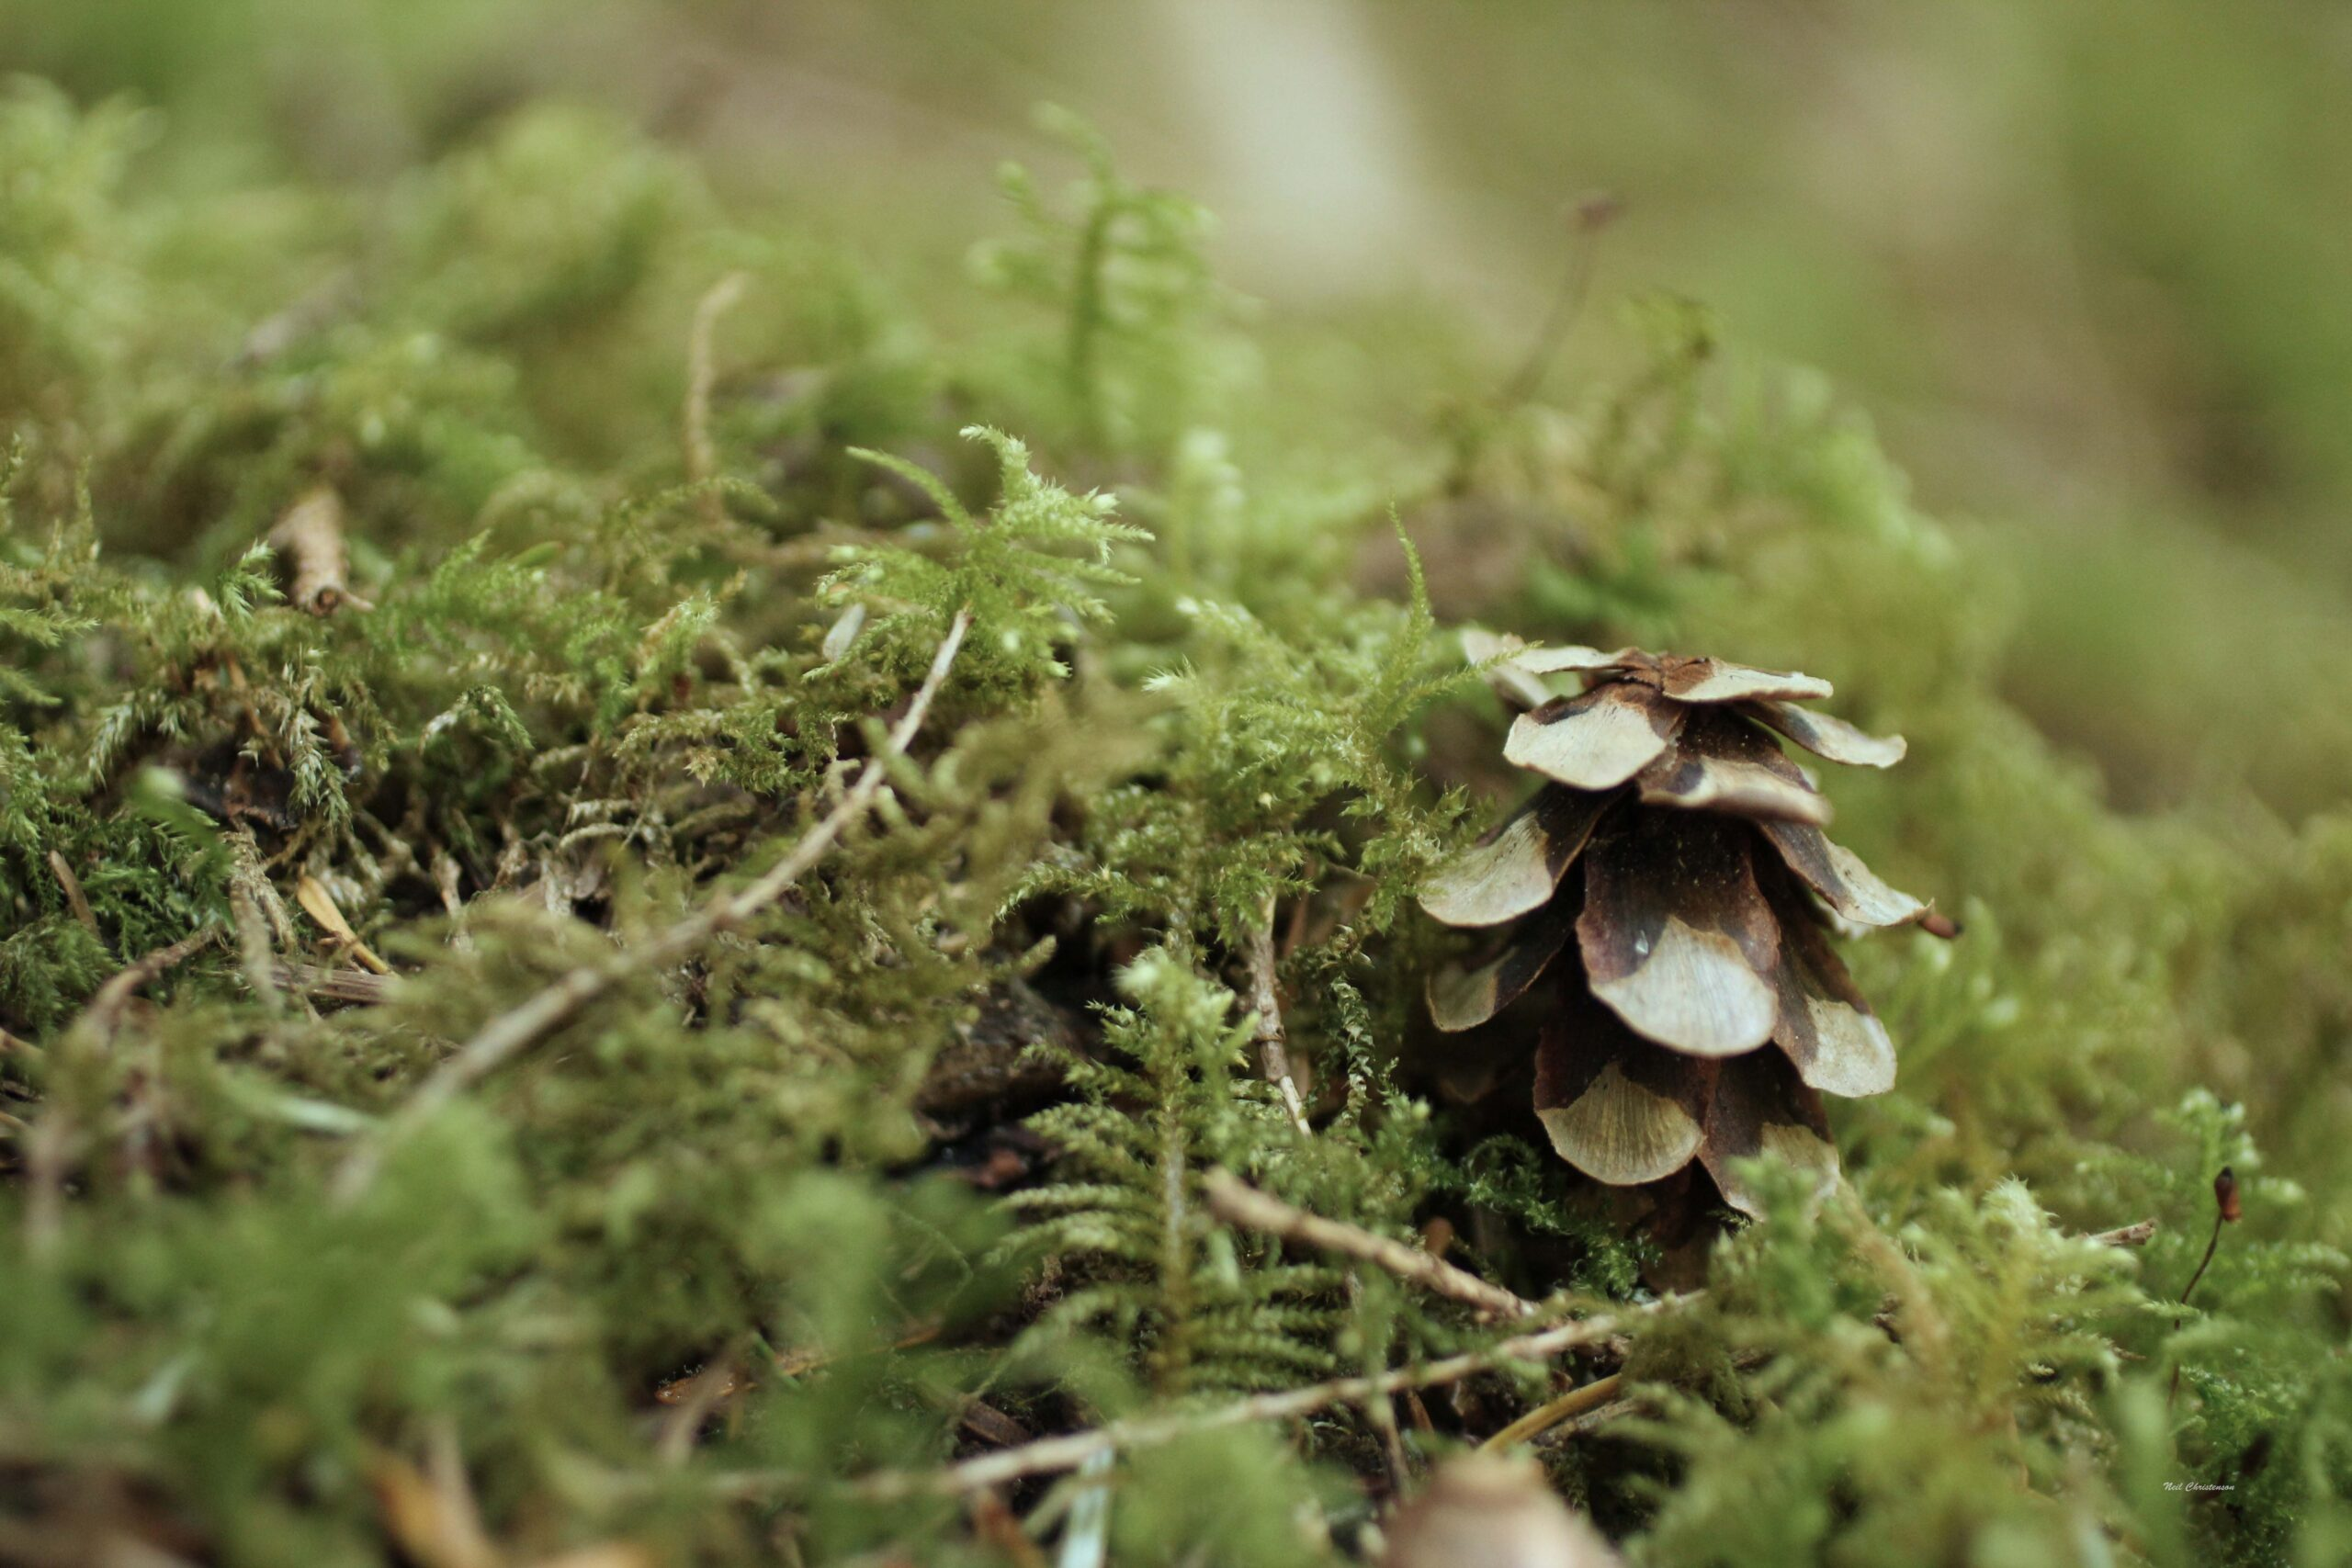 A pinecone sitting on moss.